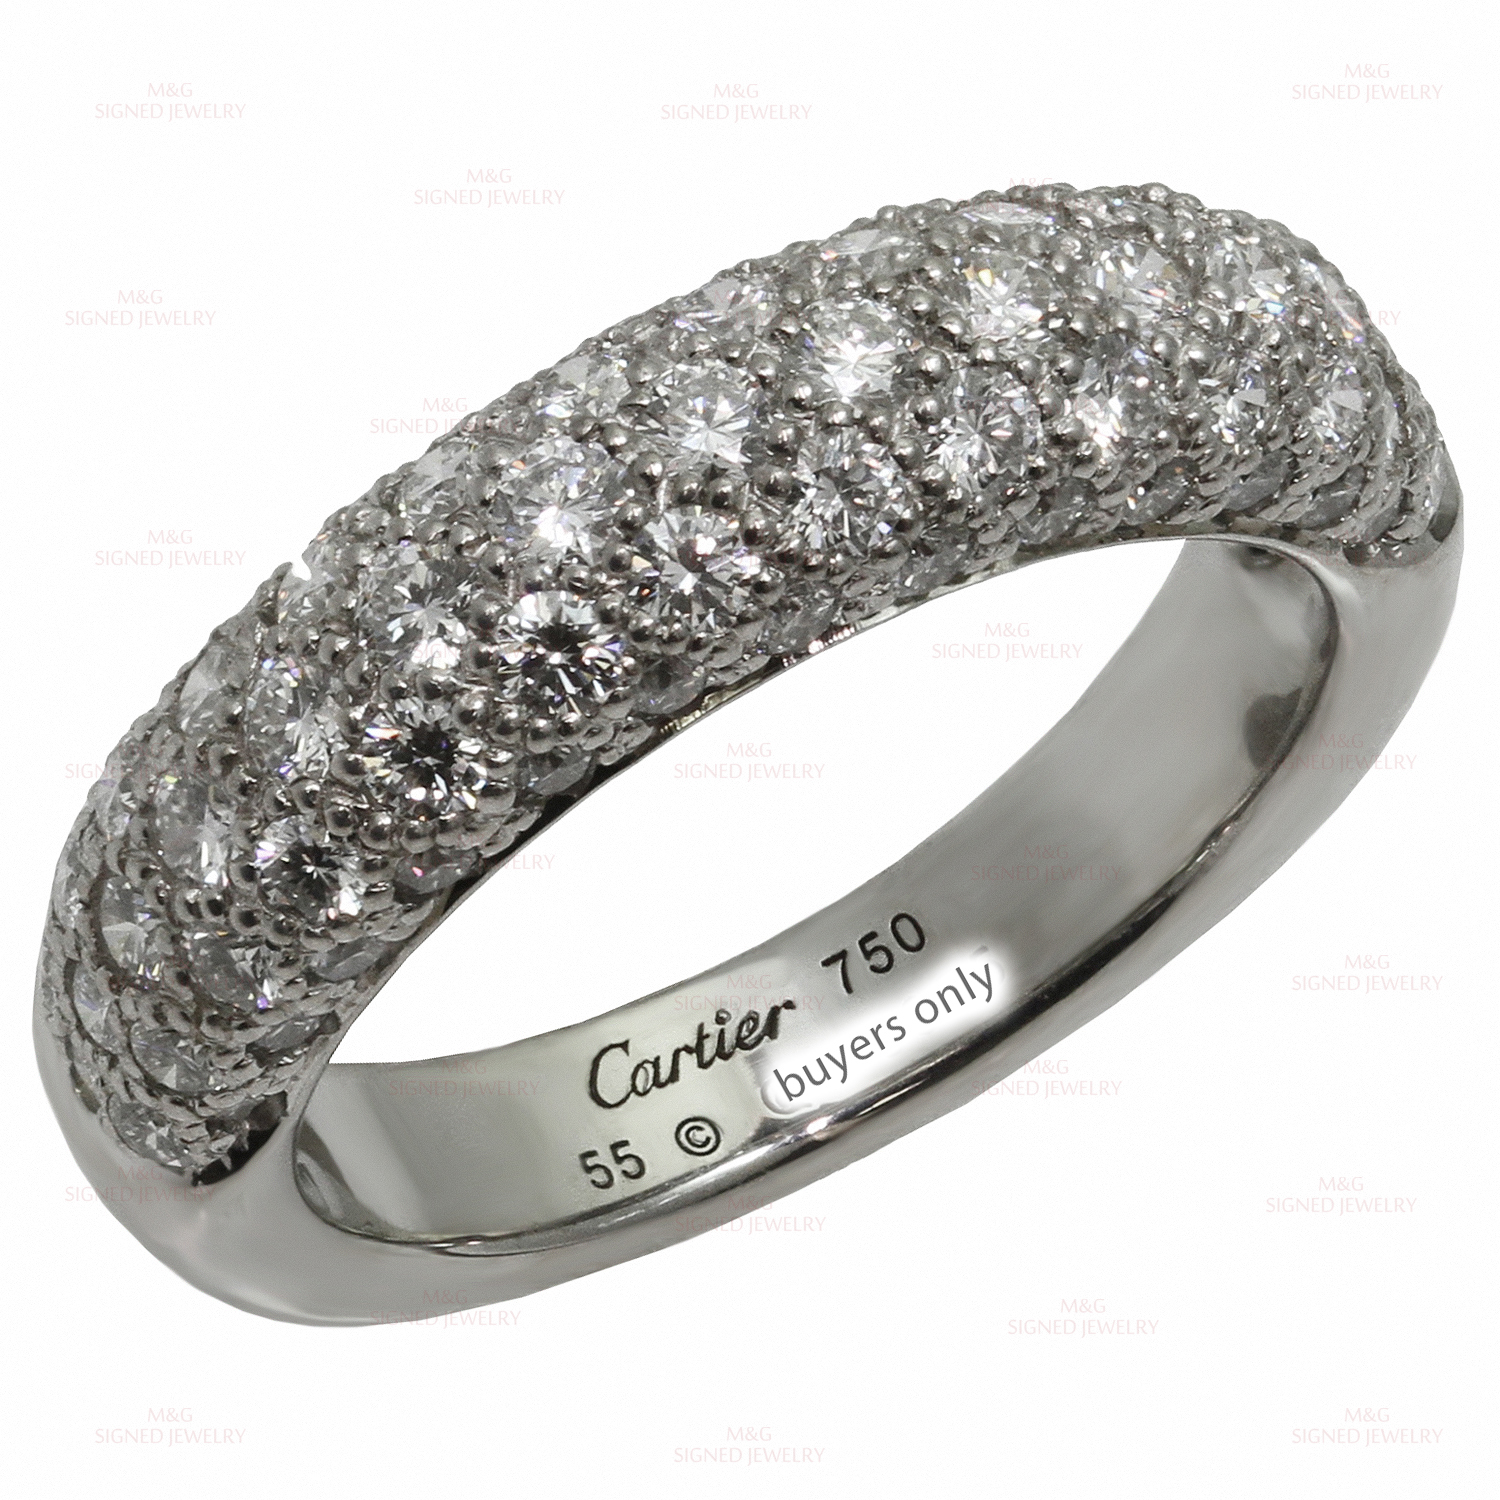 CARTIER Diamond 18k White Gold Band Ring